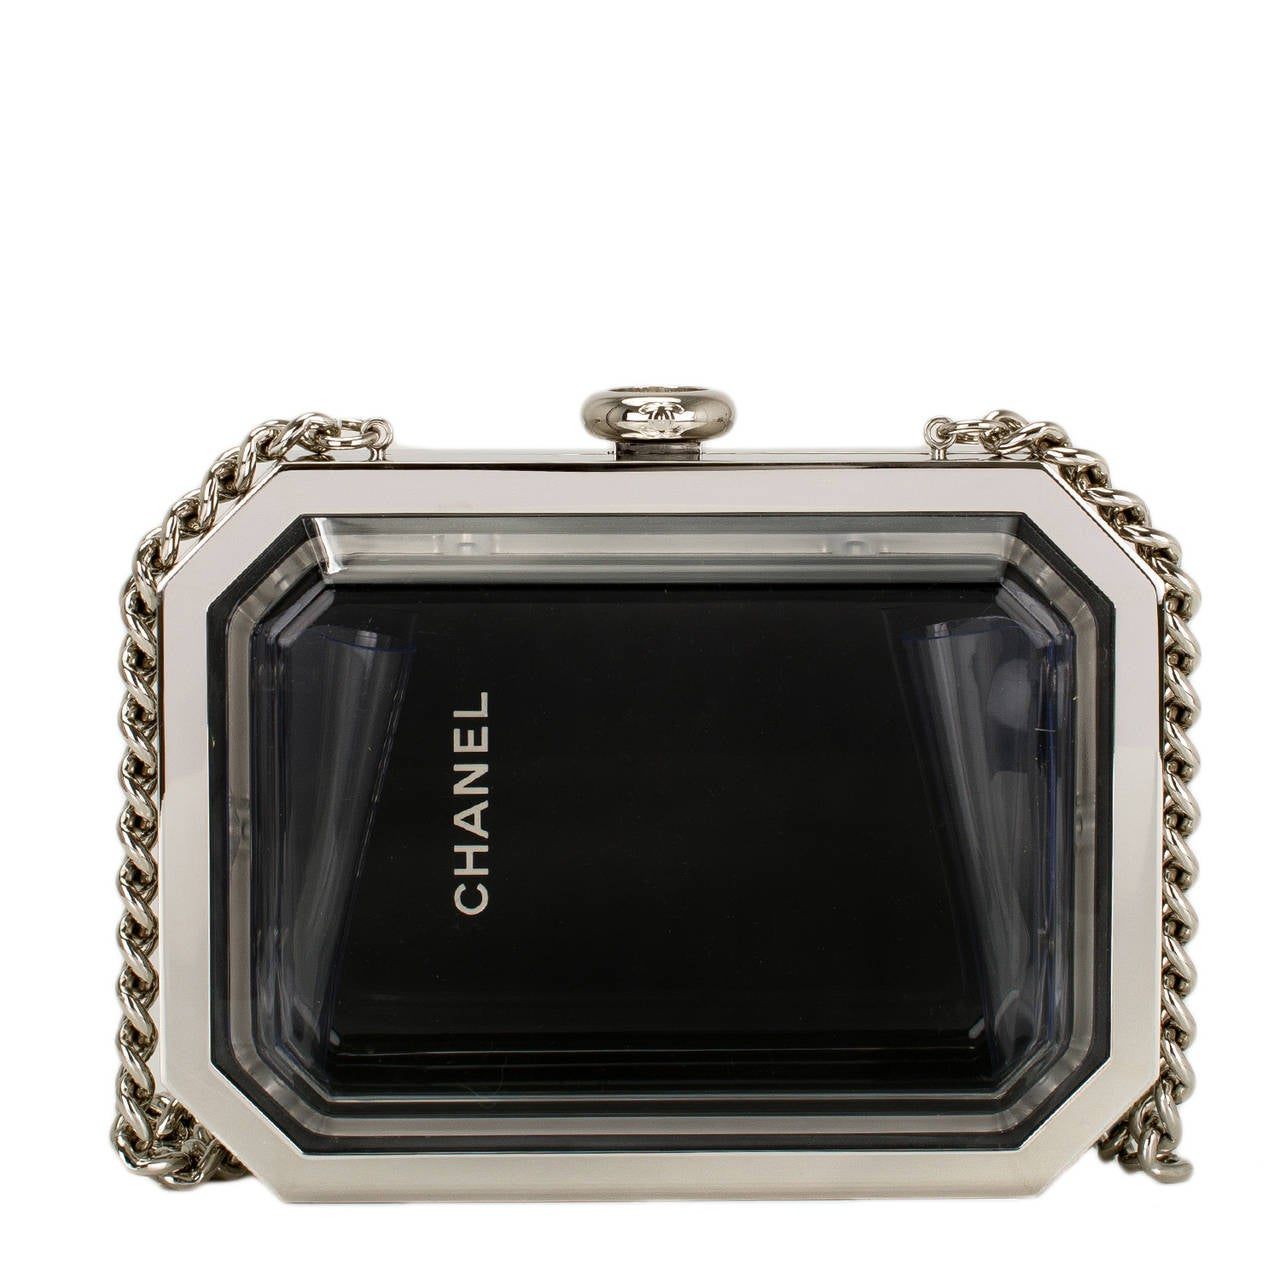 Chanel rare Premiere Watch minaudière bag of plexiglass with silver tone metal hardware.  Straight off the Chanel runway, this bag is exceedingly rare and looks fabulous when carried and equally fabulous displayed on the shelf of a Chanel lover.